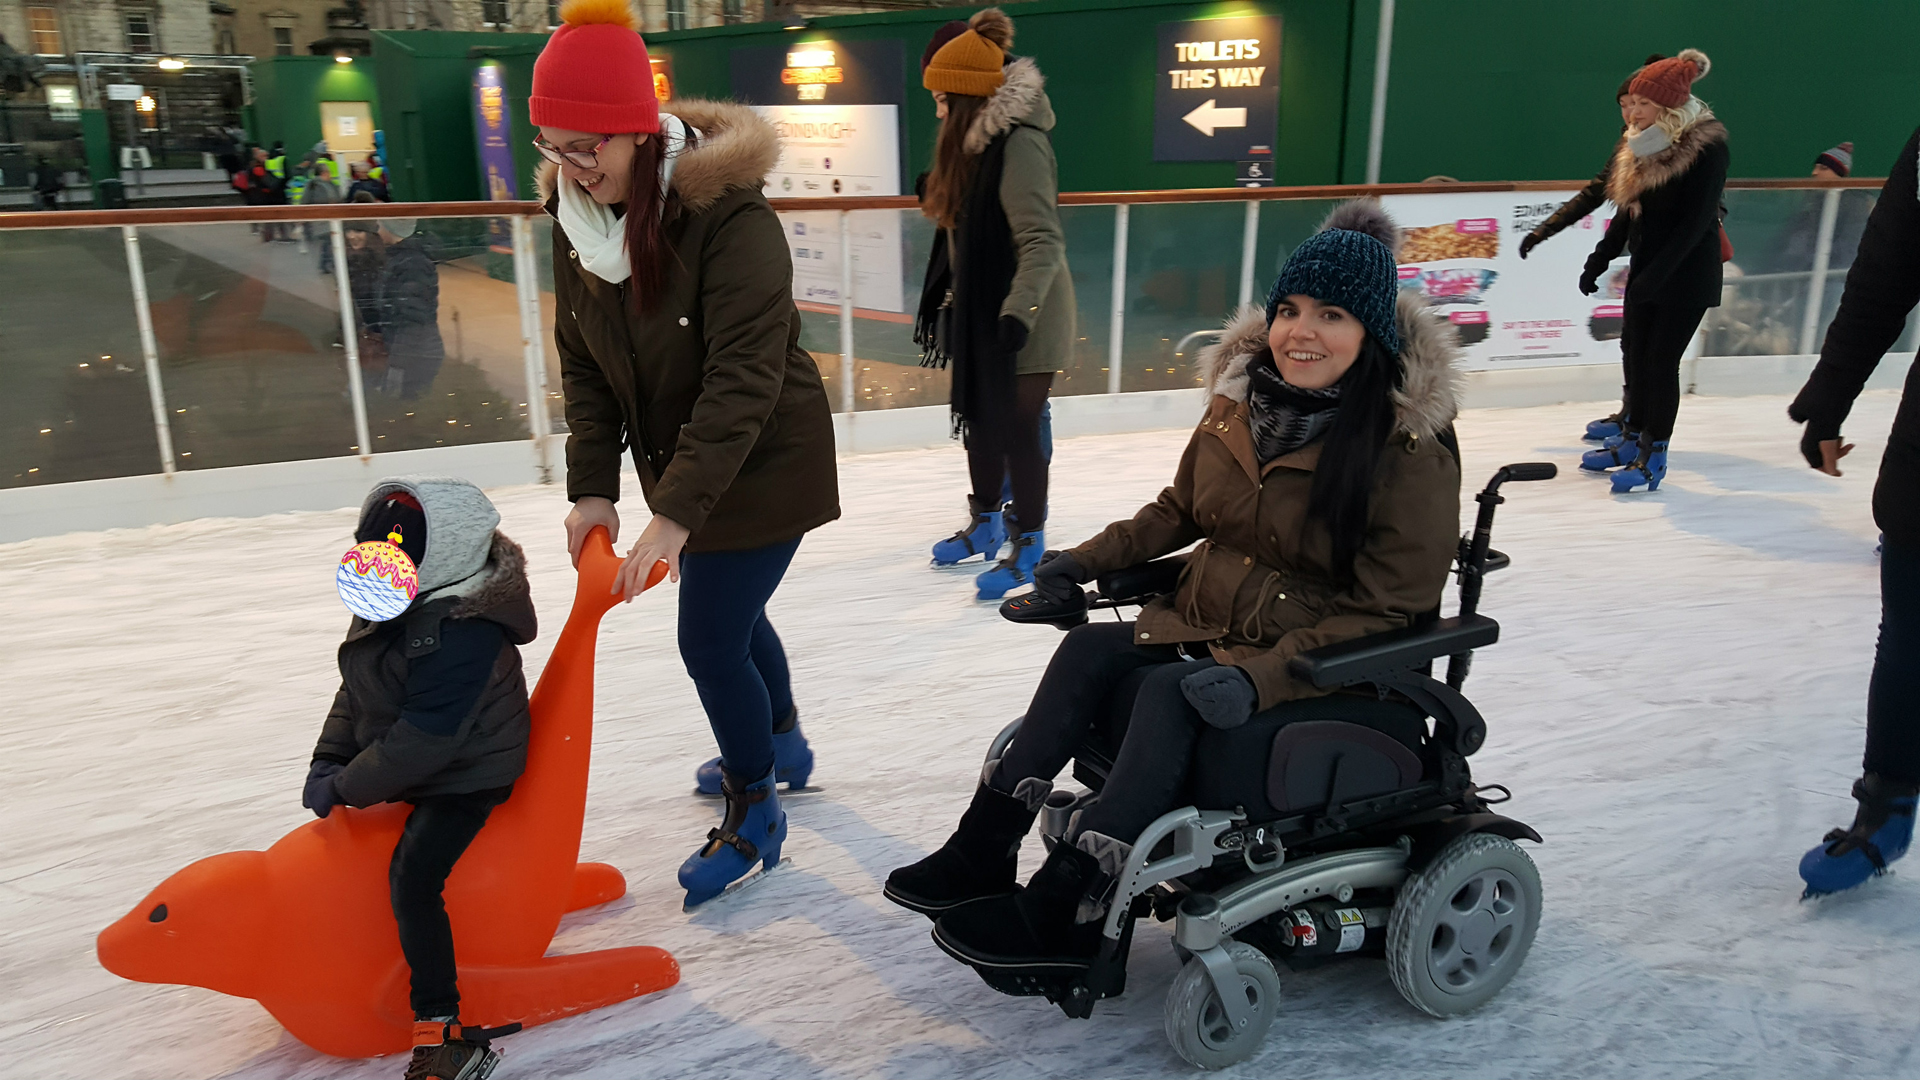 Wheelchair user ice skating at Edinburgh's Christmas